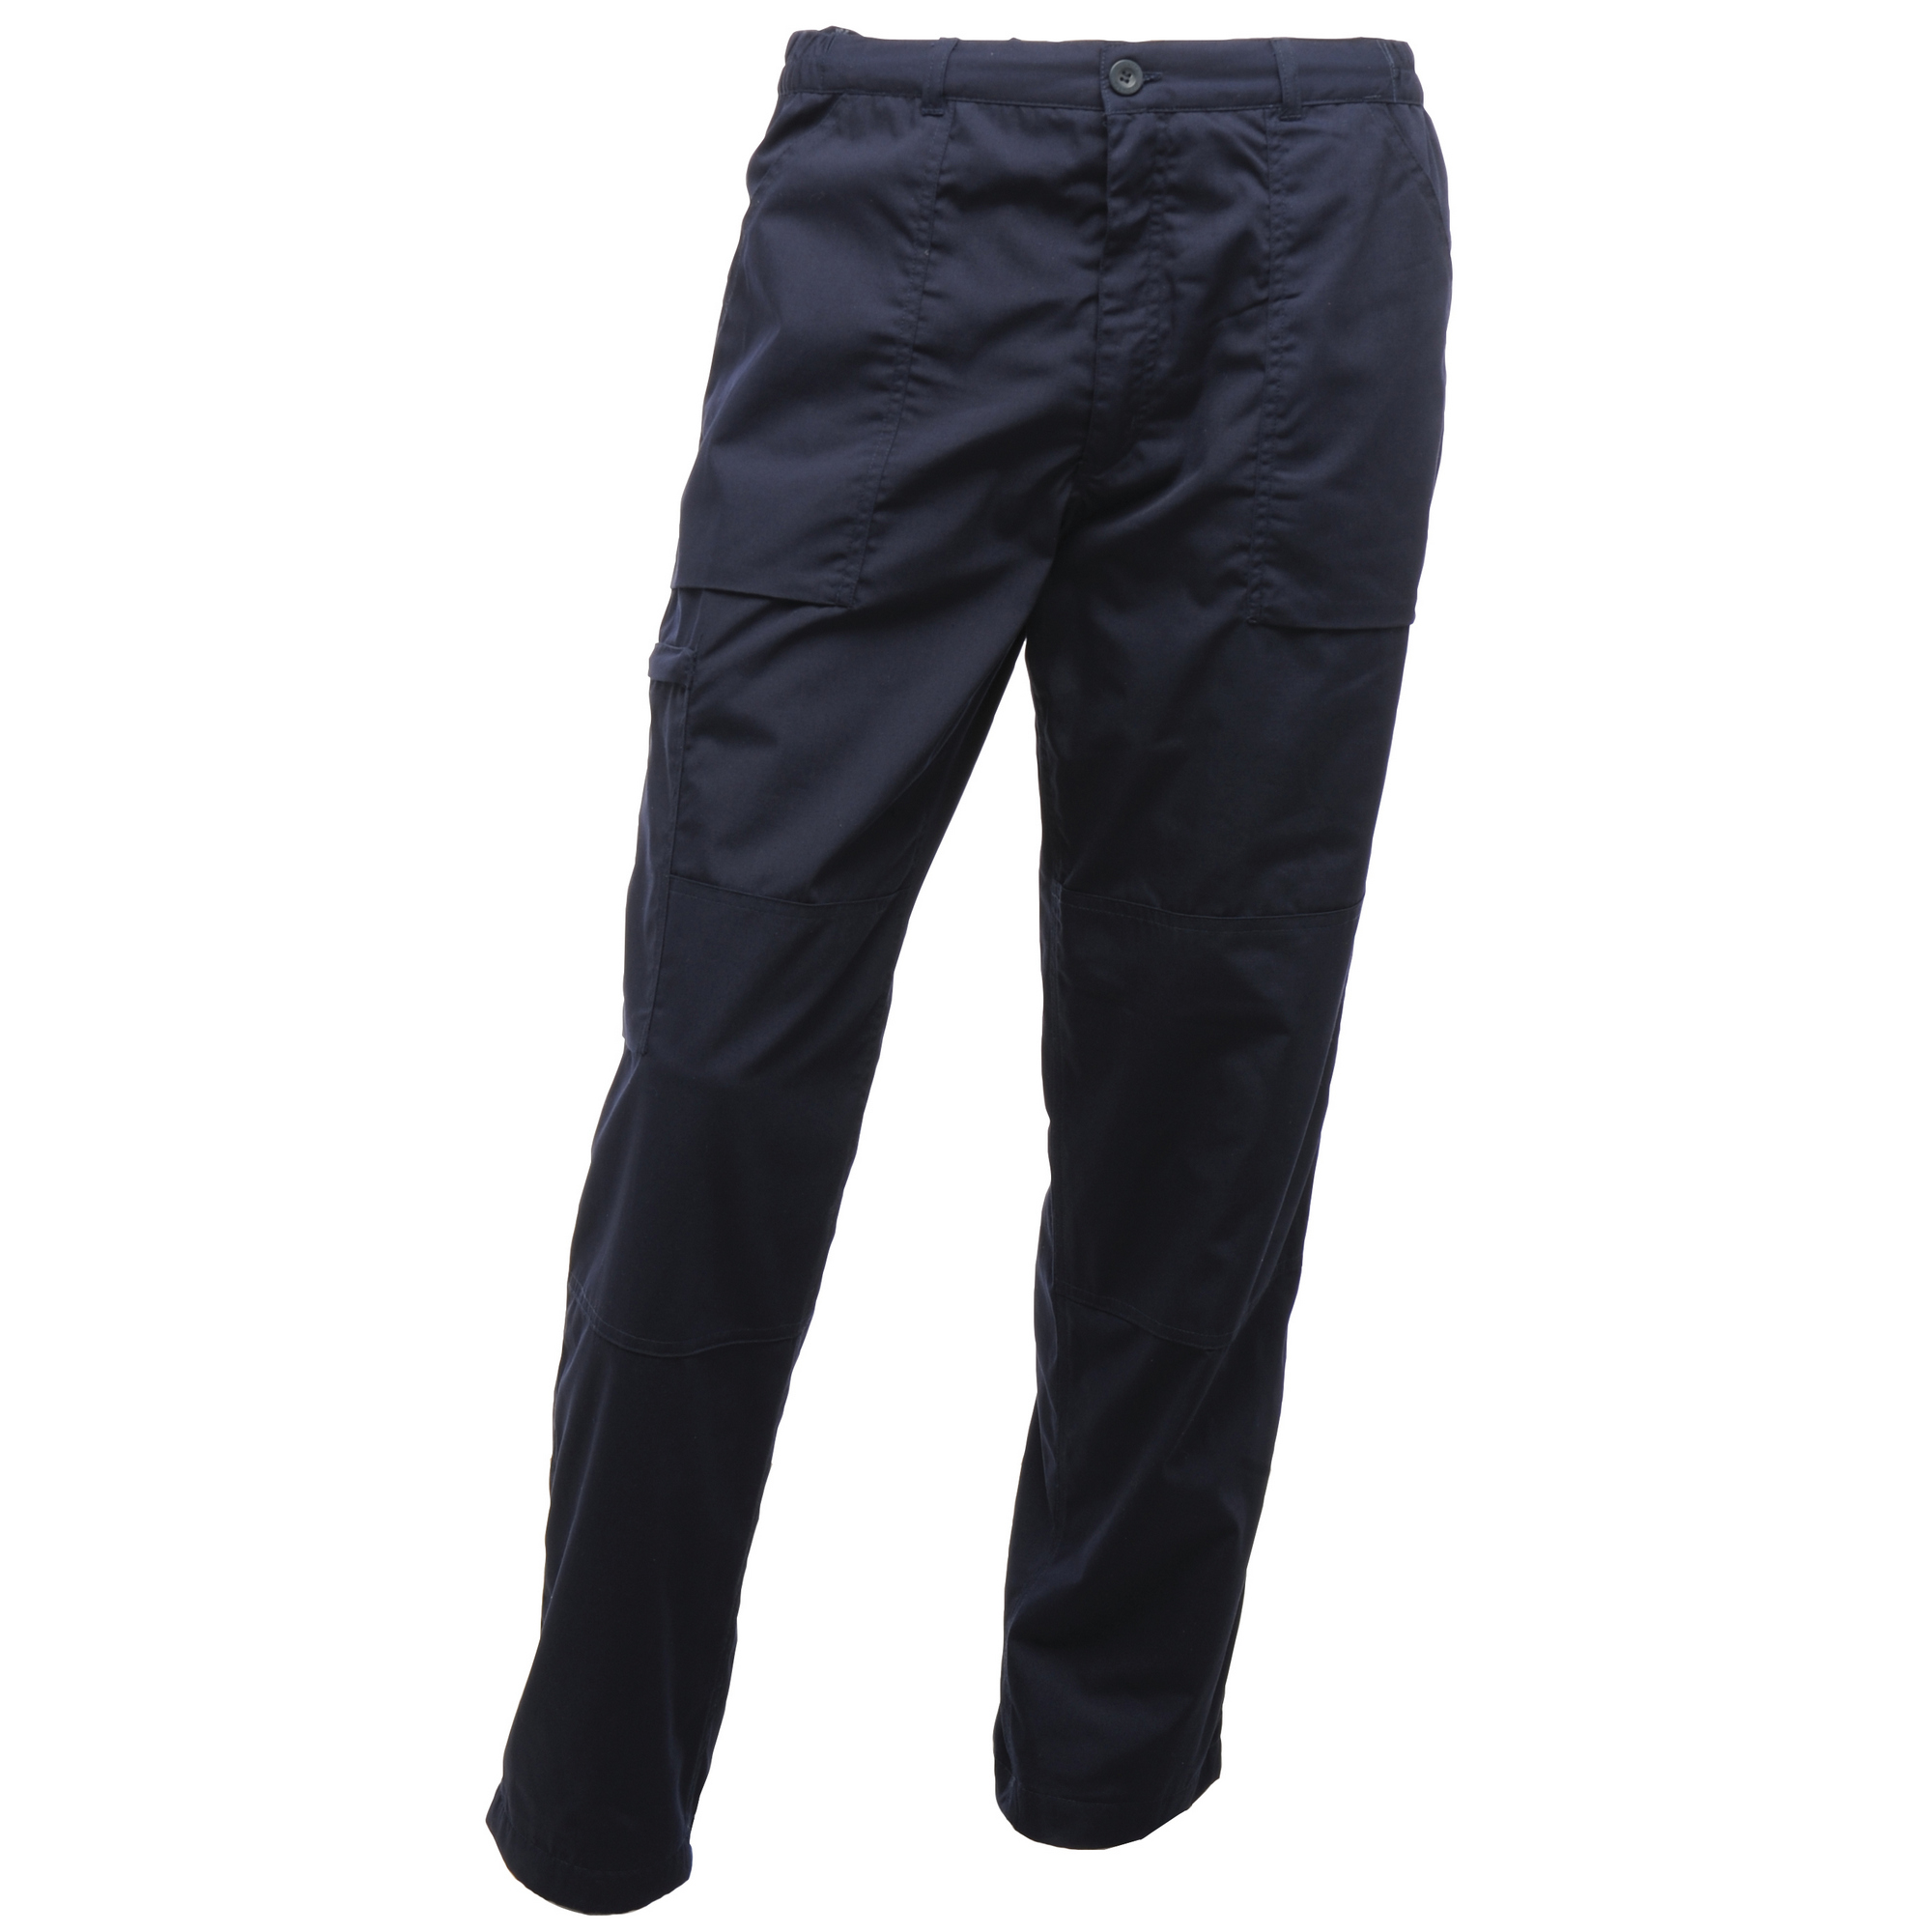 Regatta-Mens-Sports-New-Lined-Action-Trousers-UTRW1234